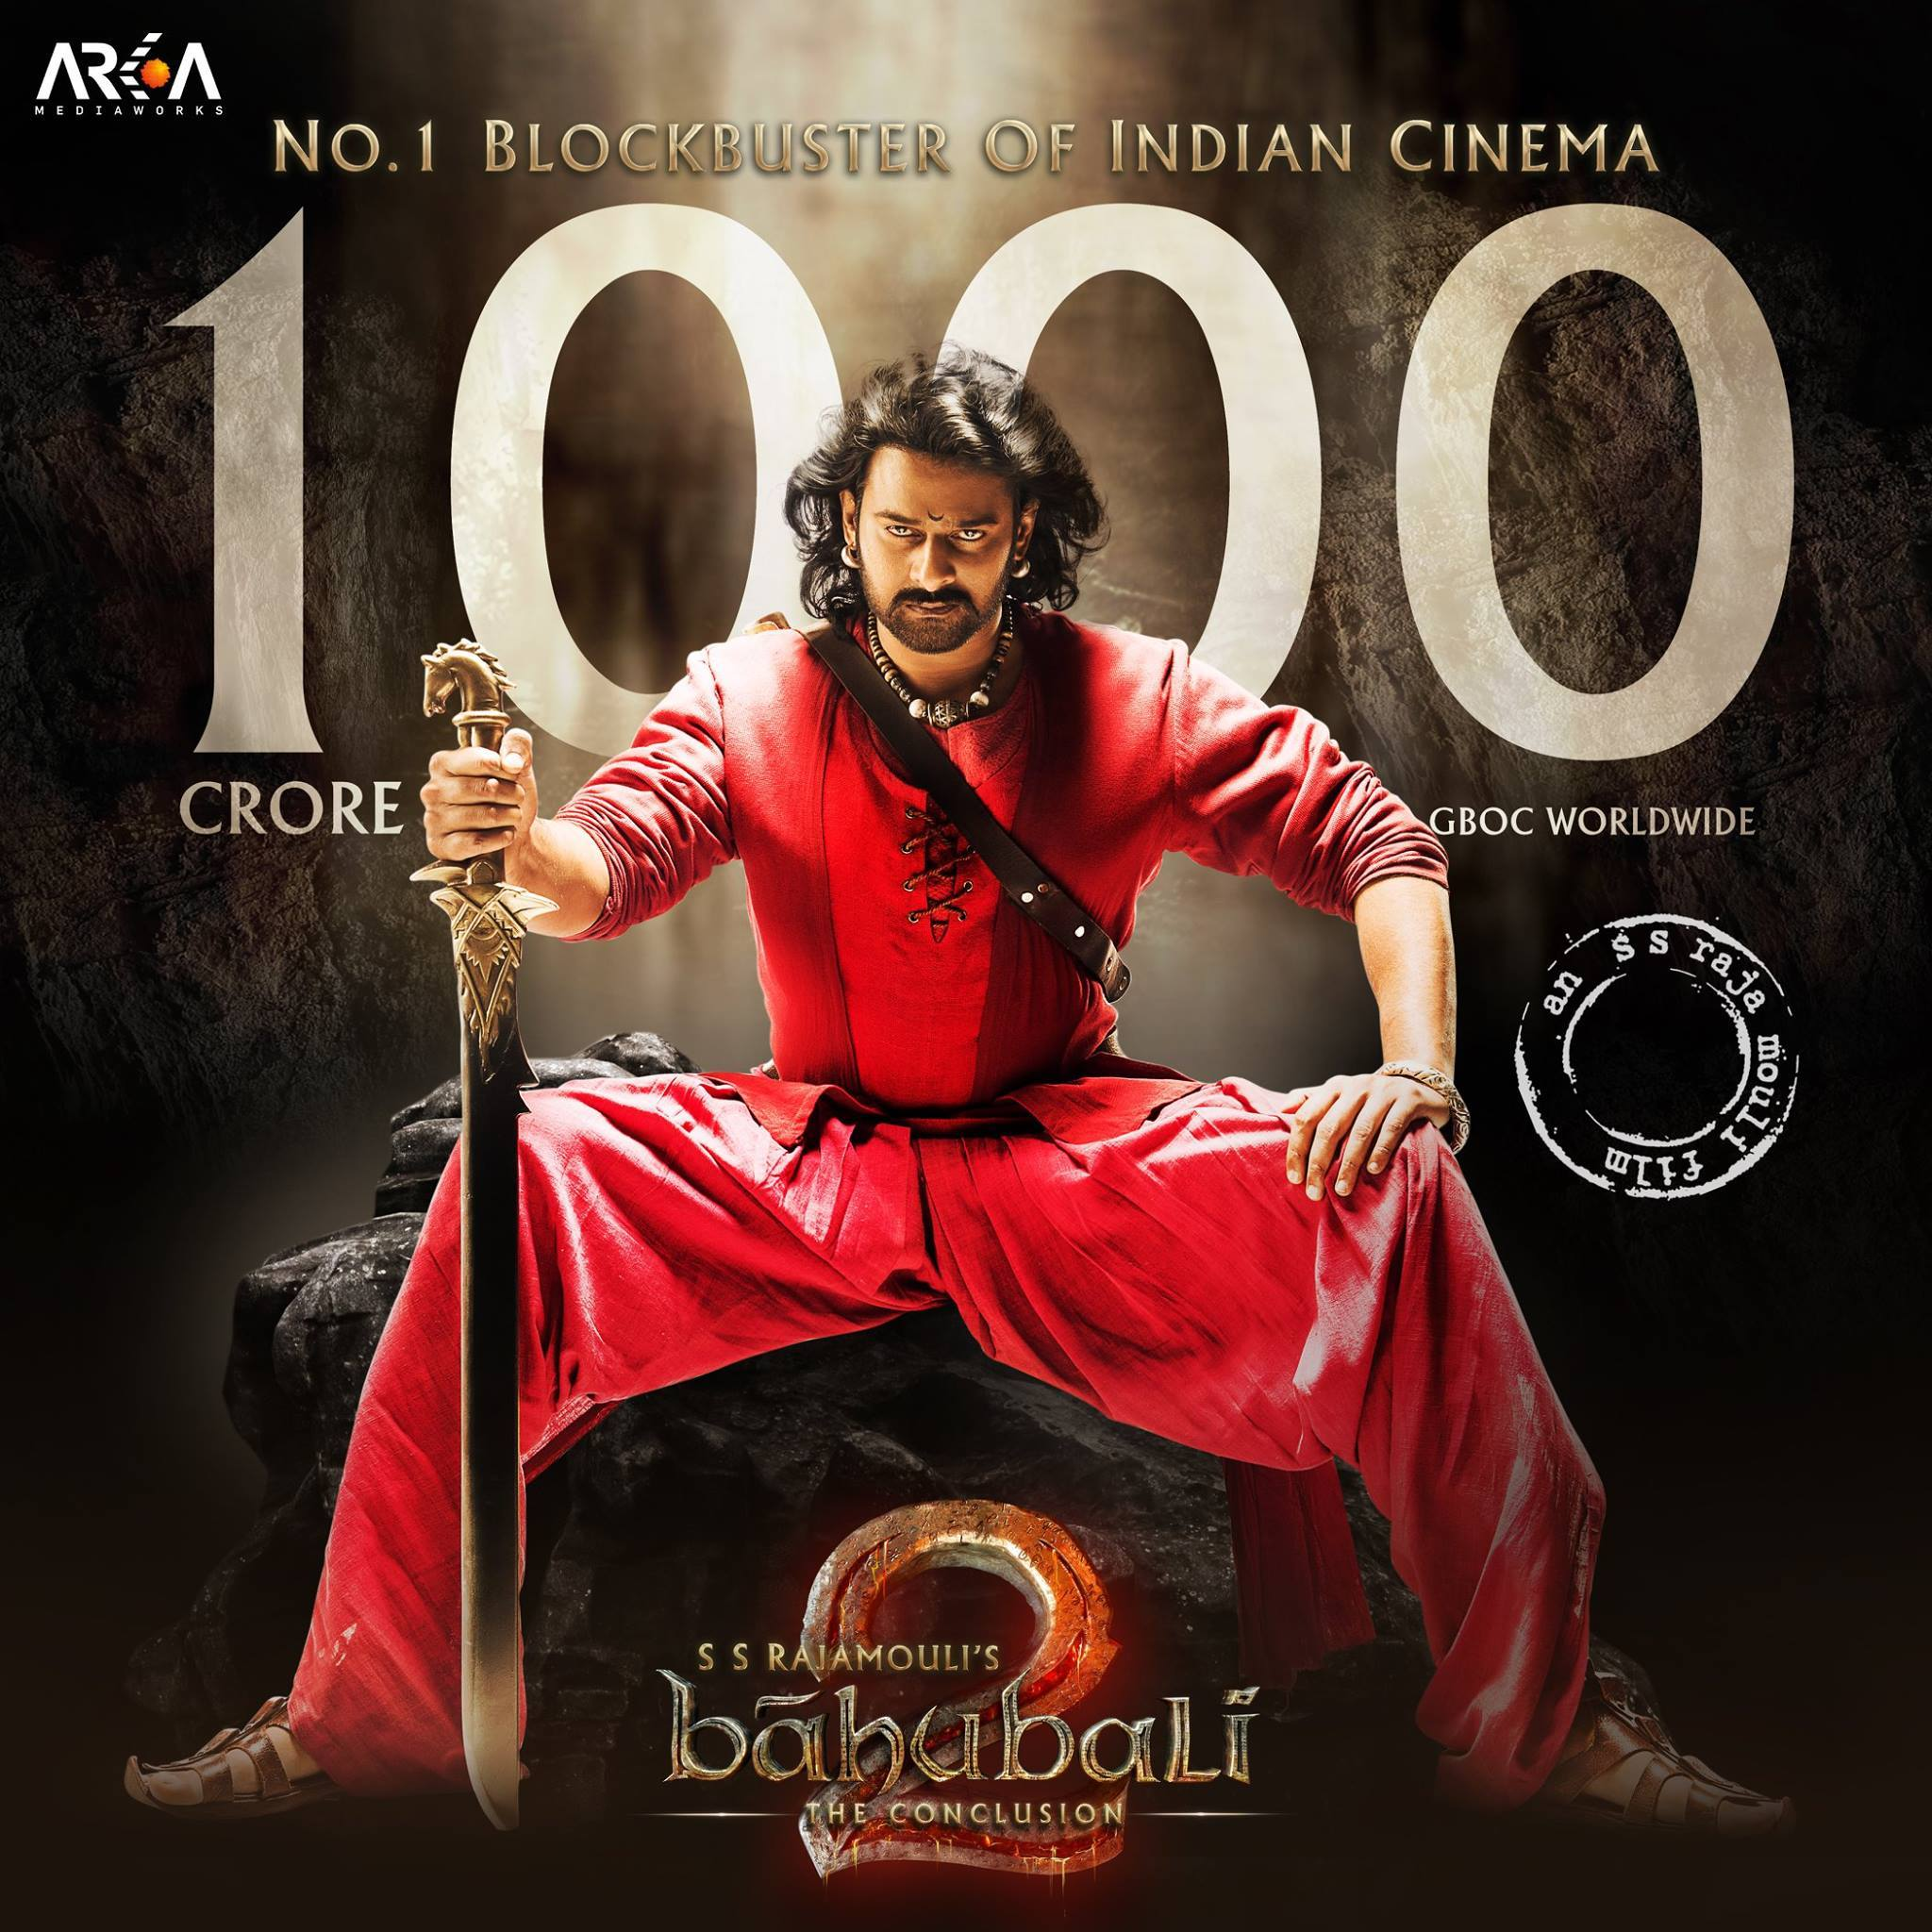 Prabhas baahubali the conclusion movie wallpapers ultra - Bahubali 2 poster hd ...